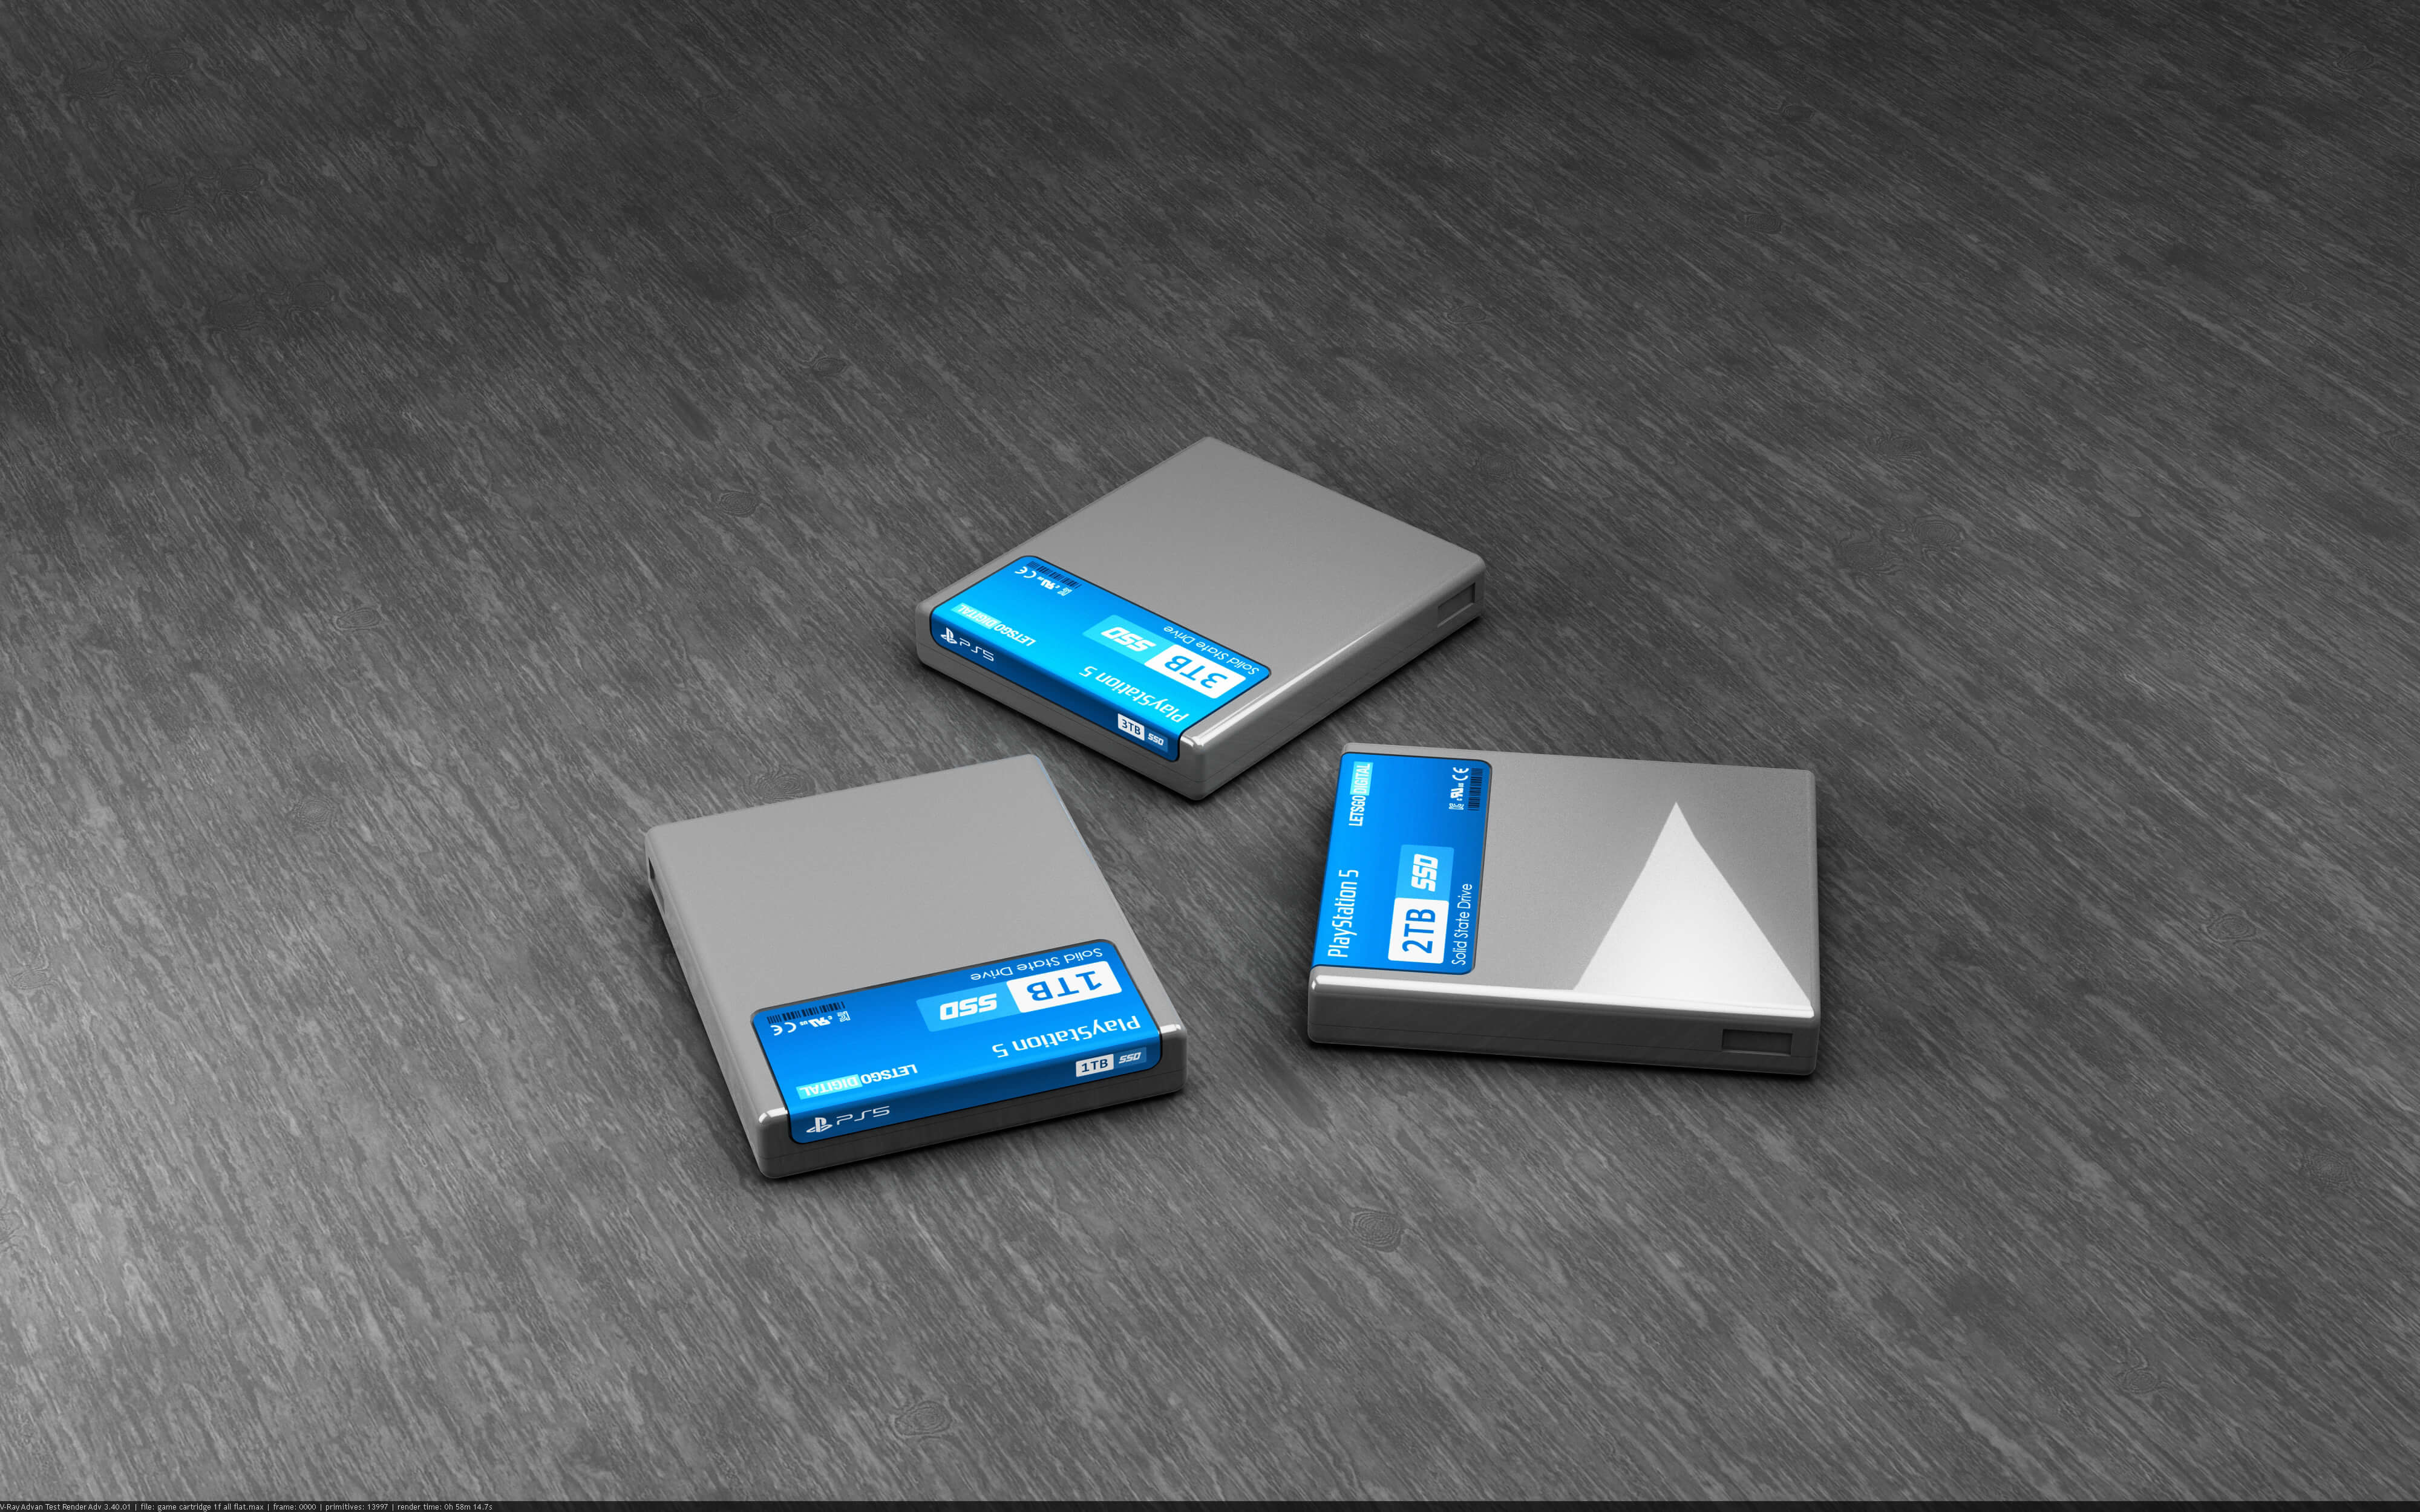 PlayStation 5 SSD